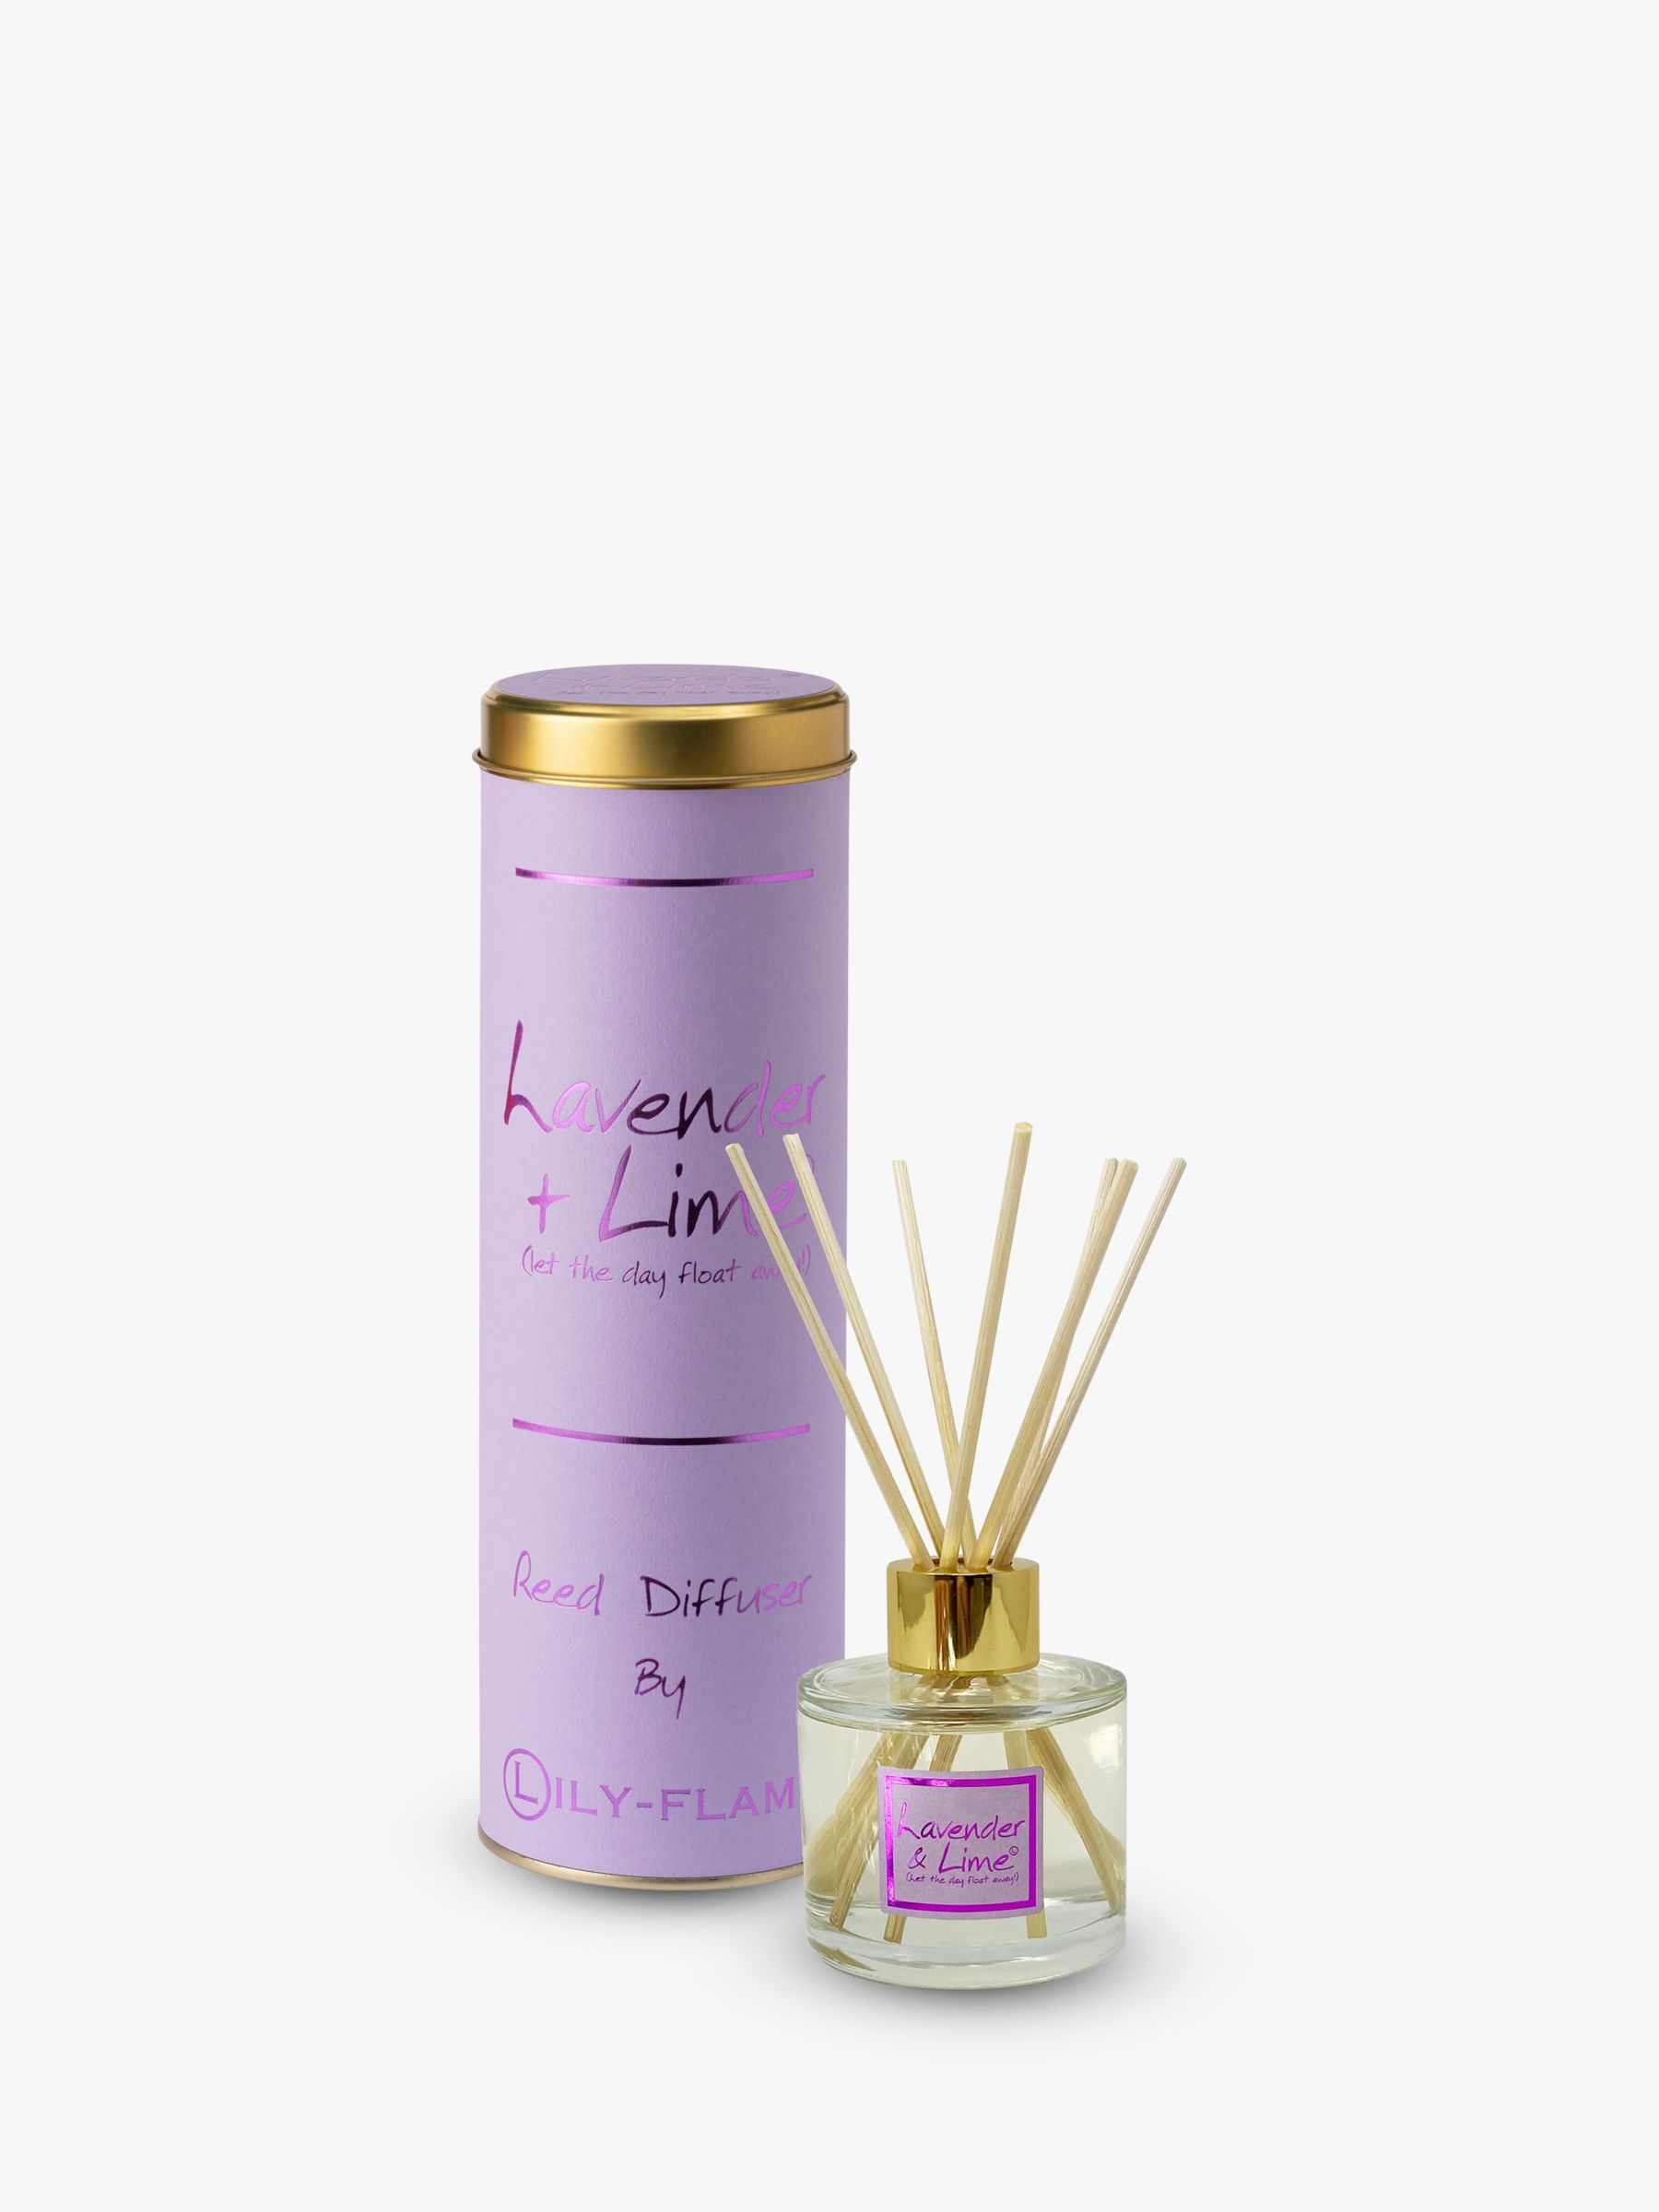 Lily-Flame Lily-flame Lavender and Lime Reed Diffuser, 100ml